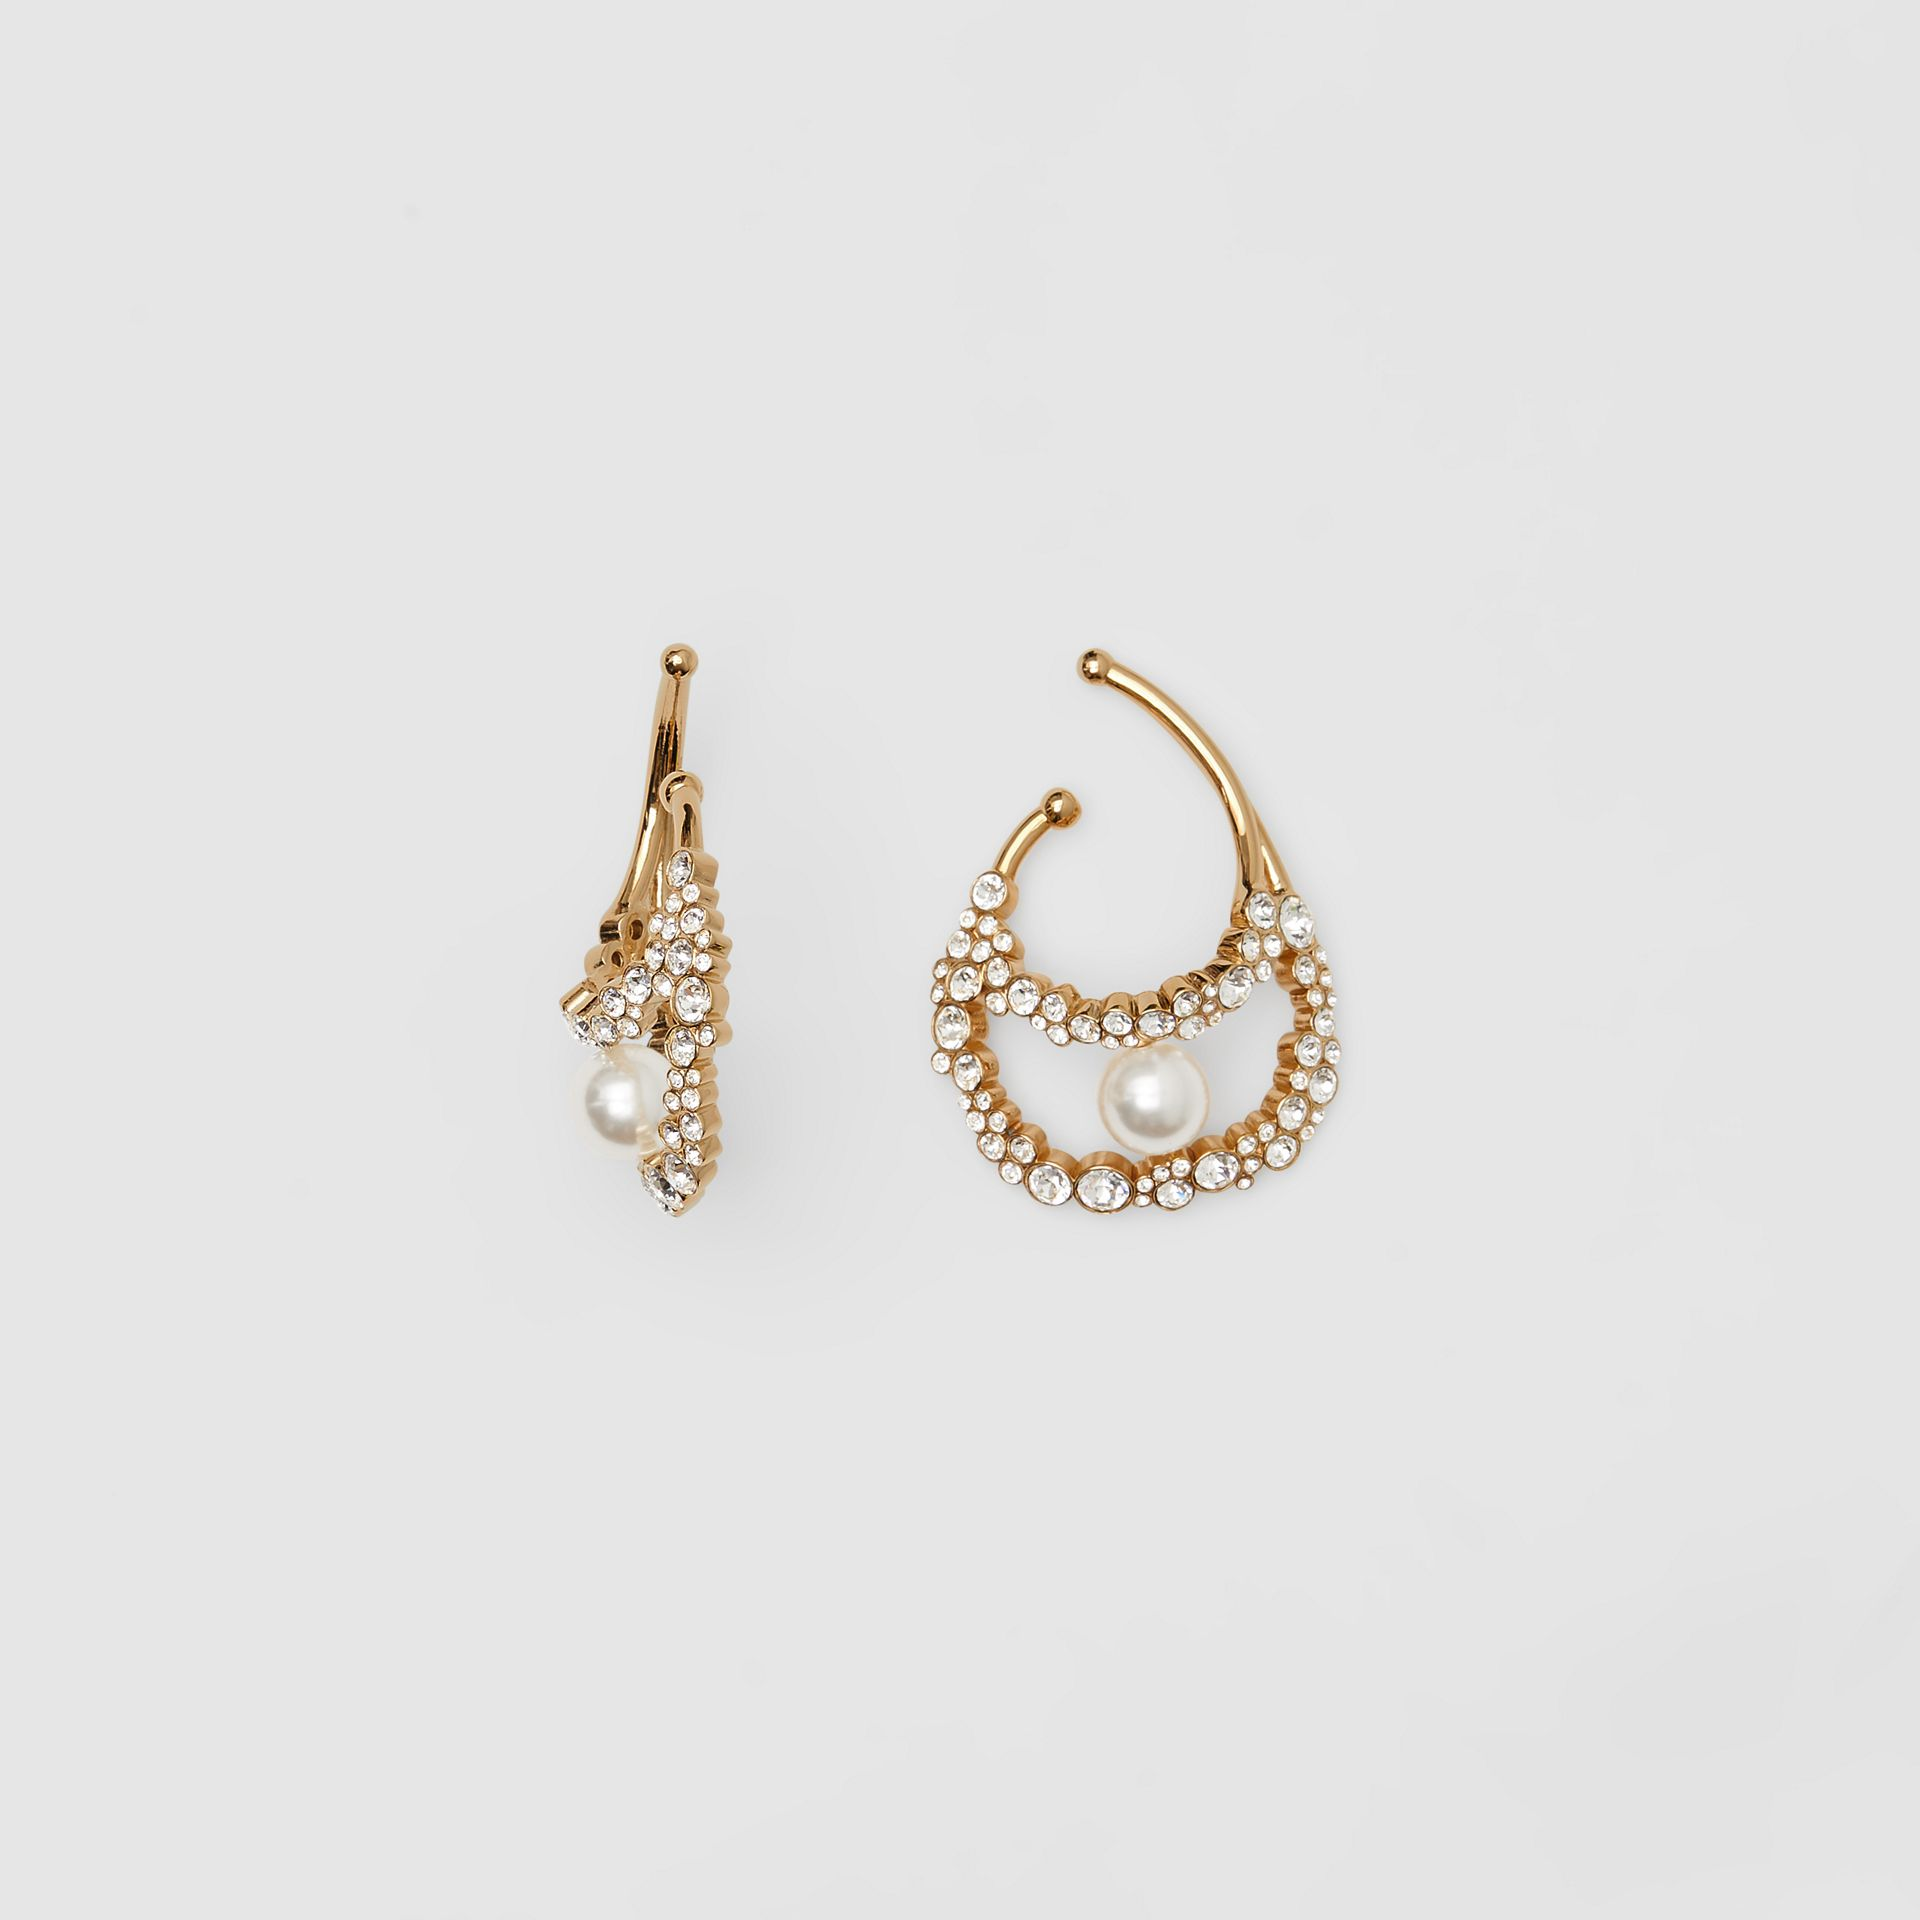 Resin Pearl Detail Crystal Gold-plated Ear Cuff in Light Gold/crystal - Women | Burberry Australia - gallery image 2